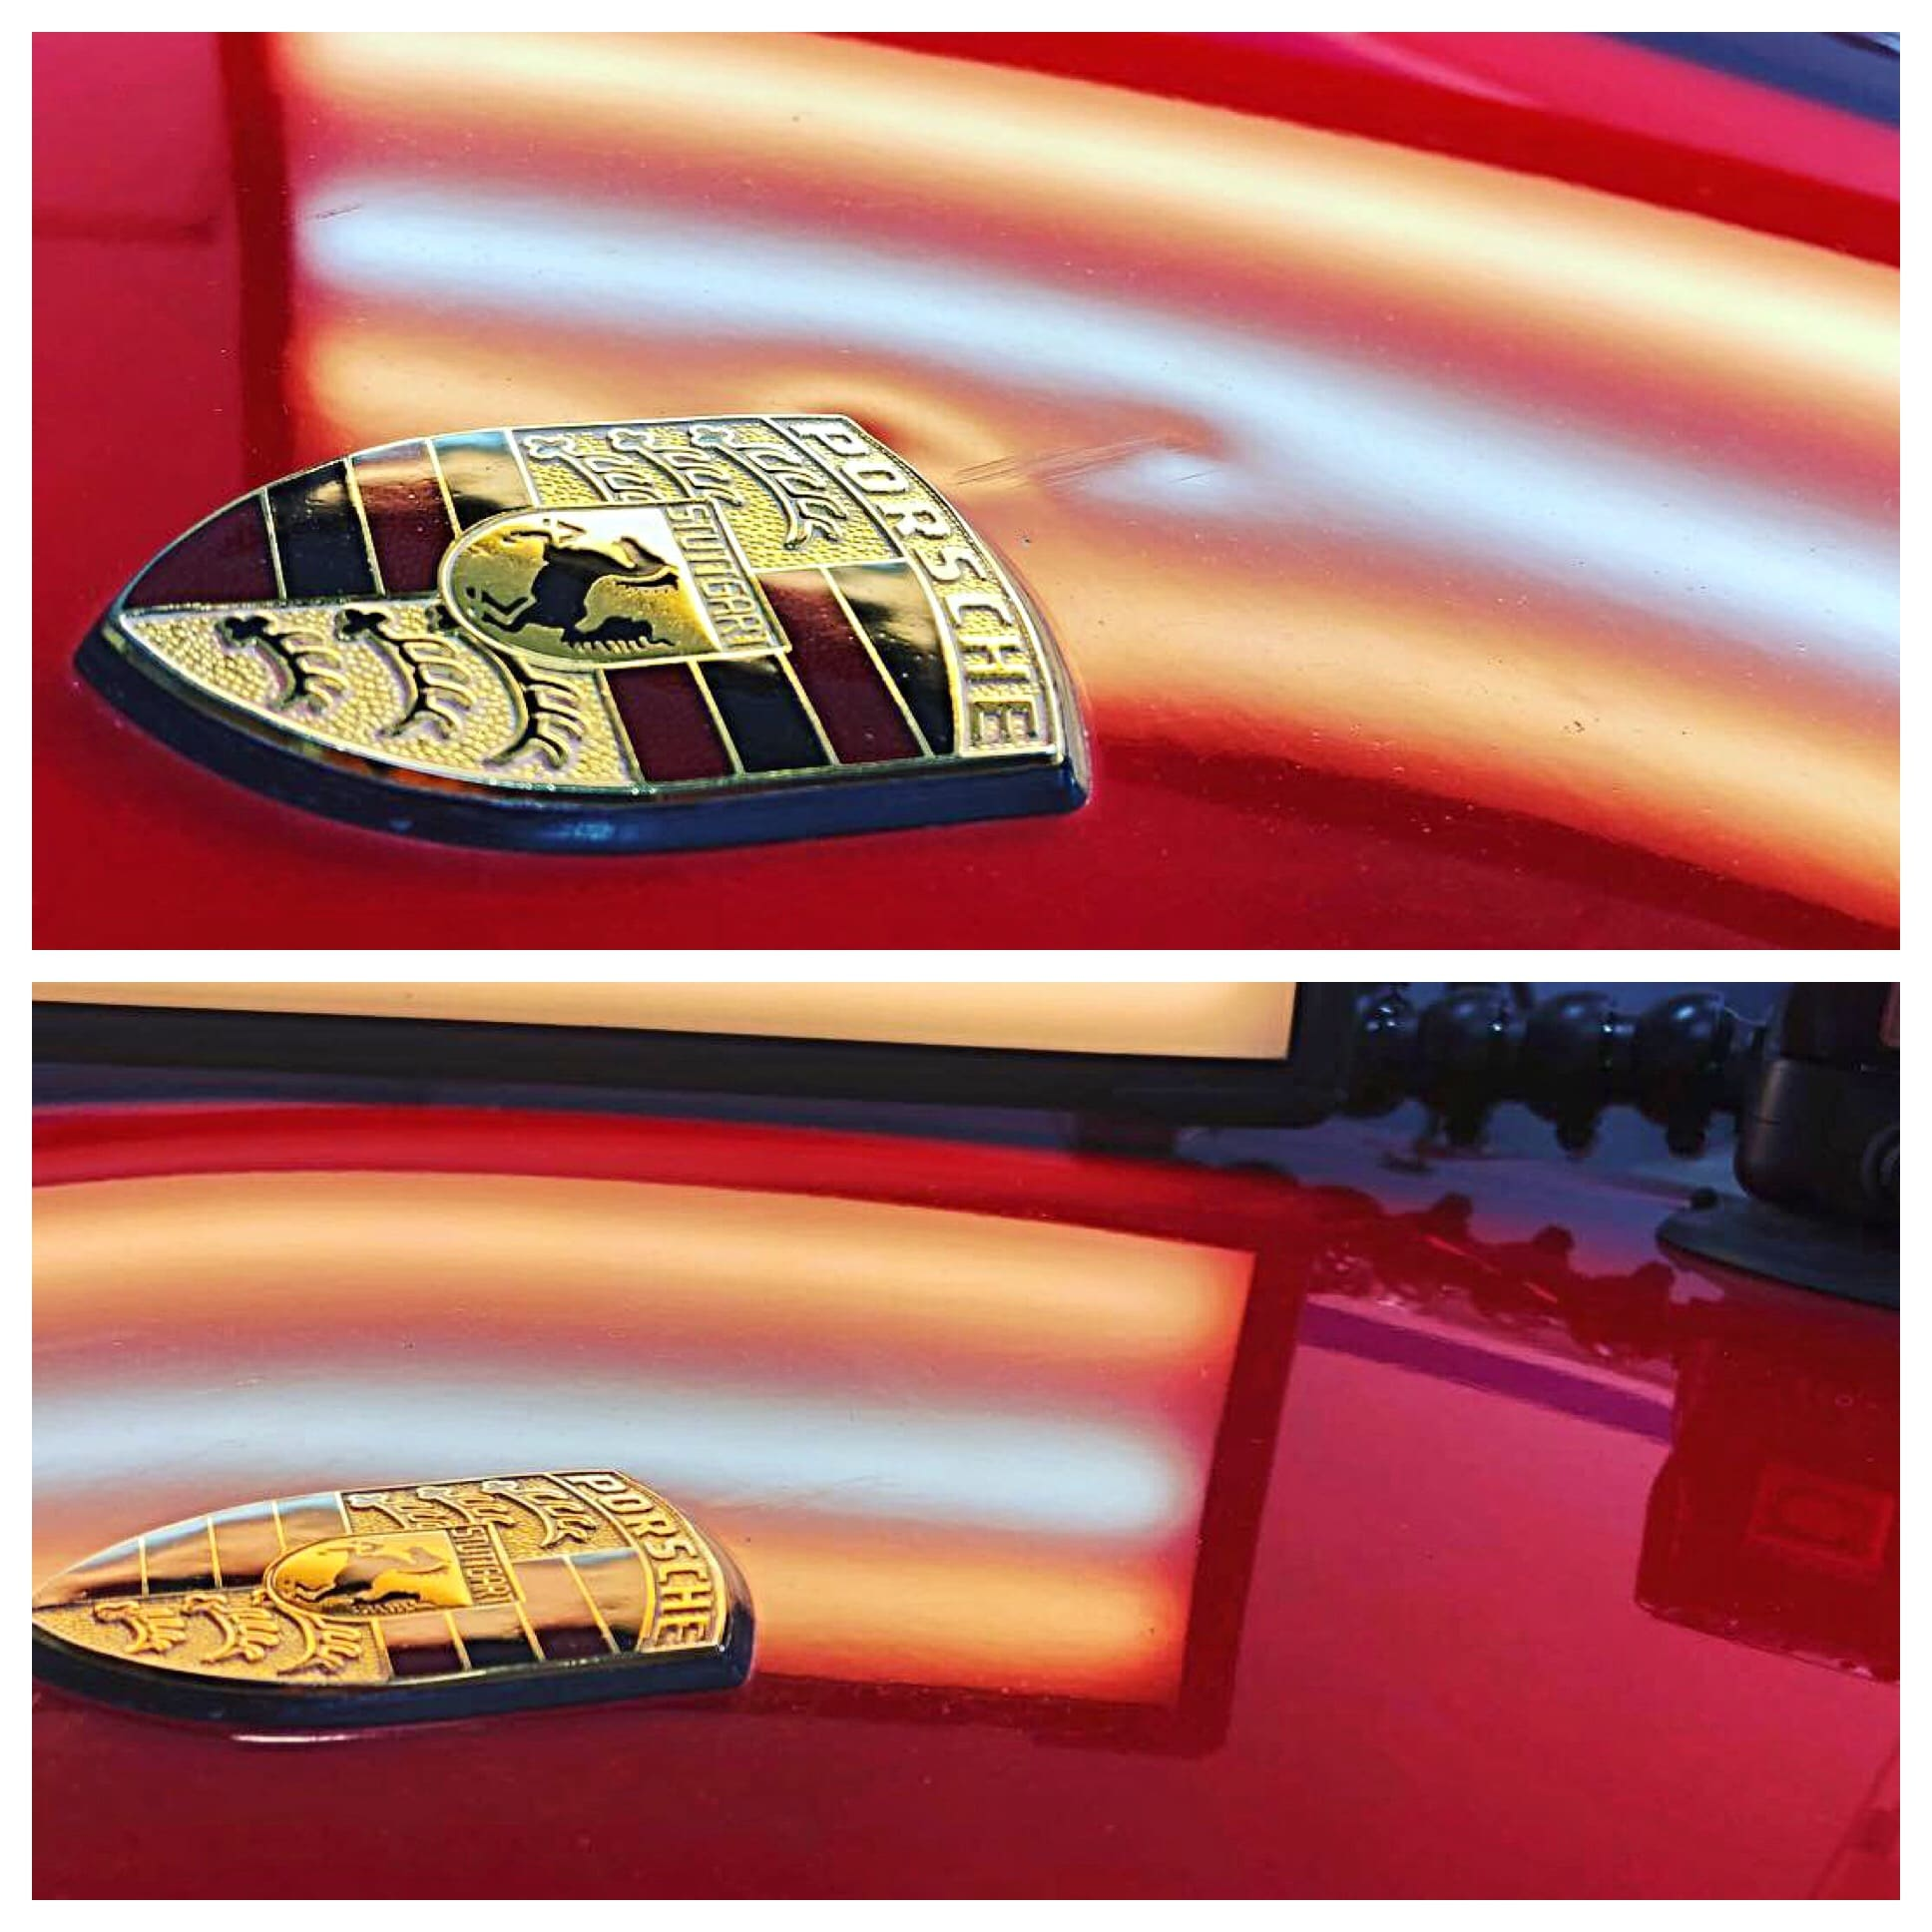 What does paintless dent repair cost